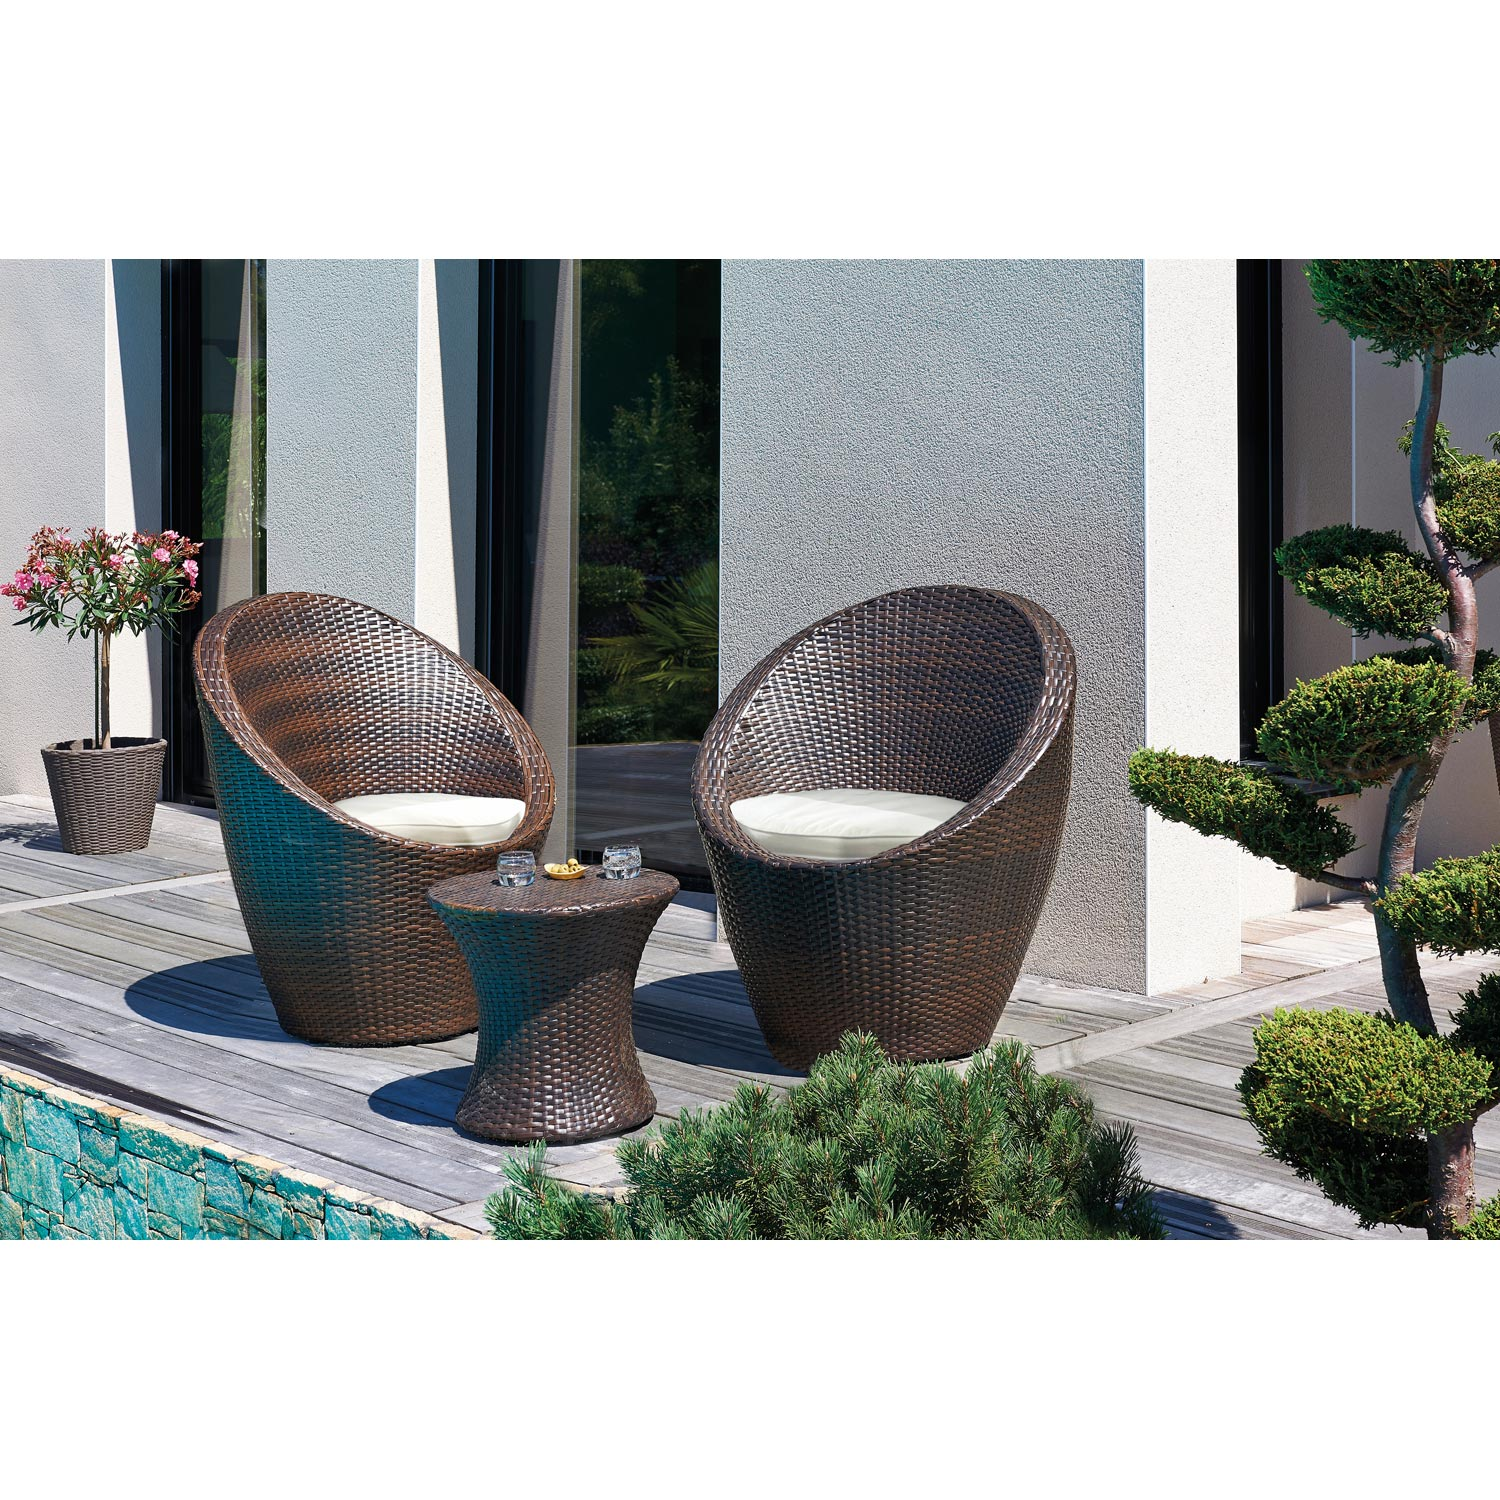 Salon bas de jardin totem r sine tress e chocolat 1 table for Fauteuil de jardin en resine tressee